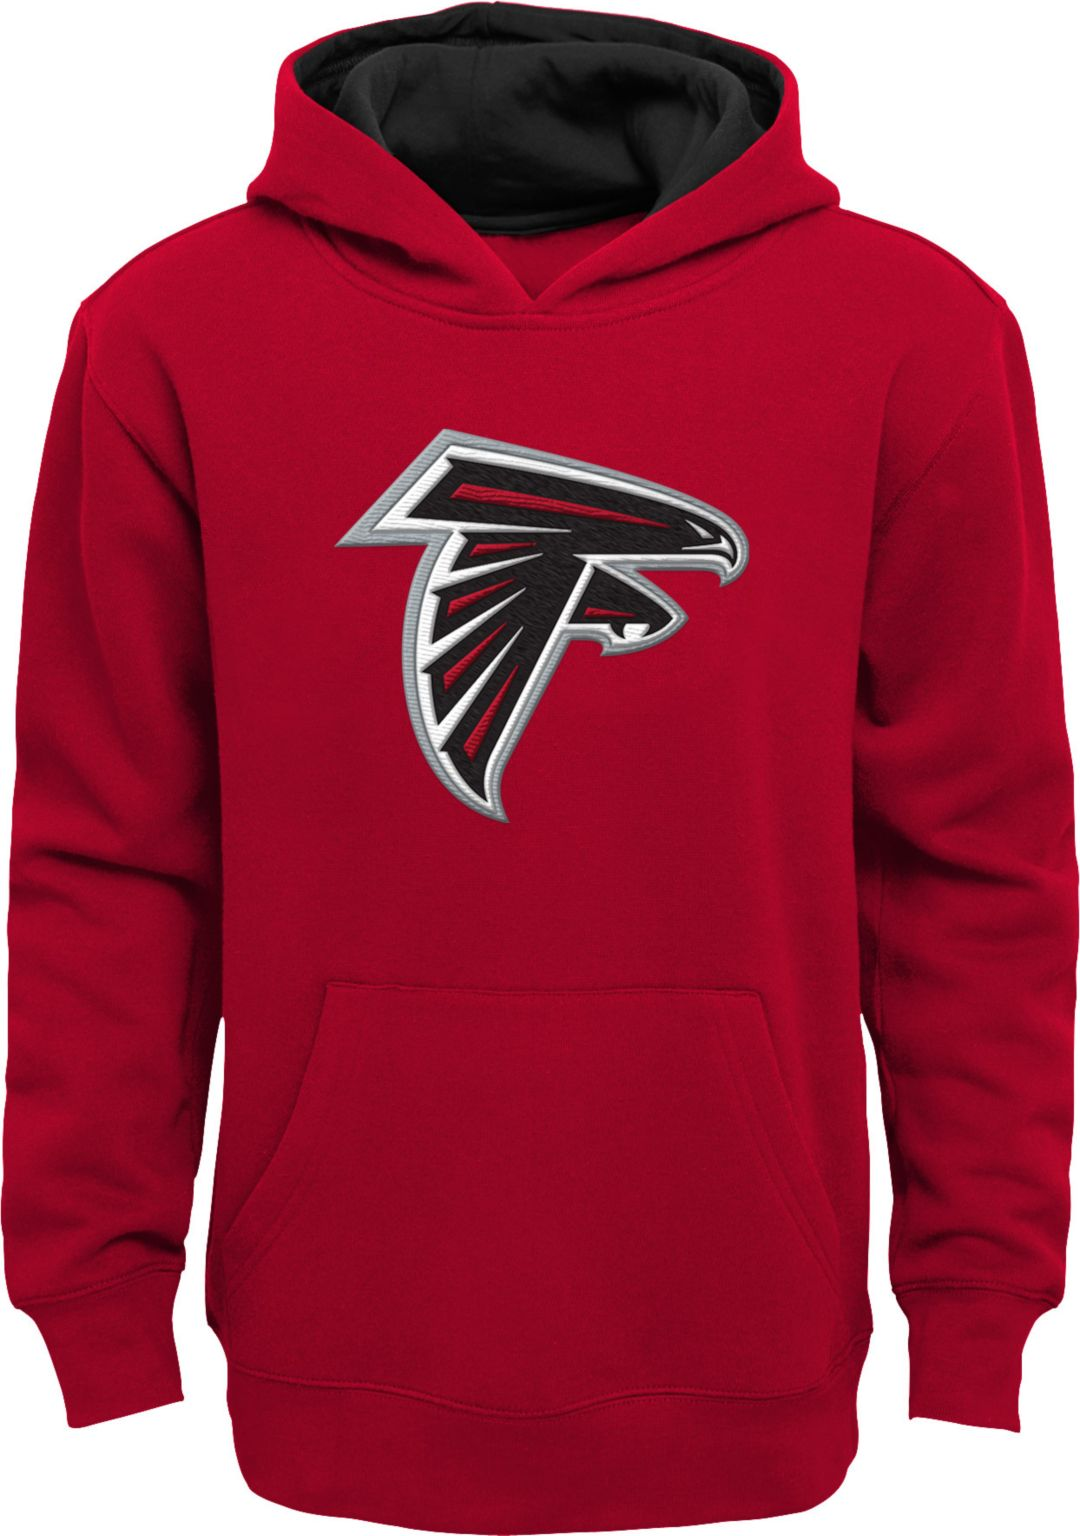 newest ff6b0 01e4a NFL Team Apparel Youth Atlanta Falcons Prime Red Pullover Hoodie